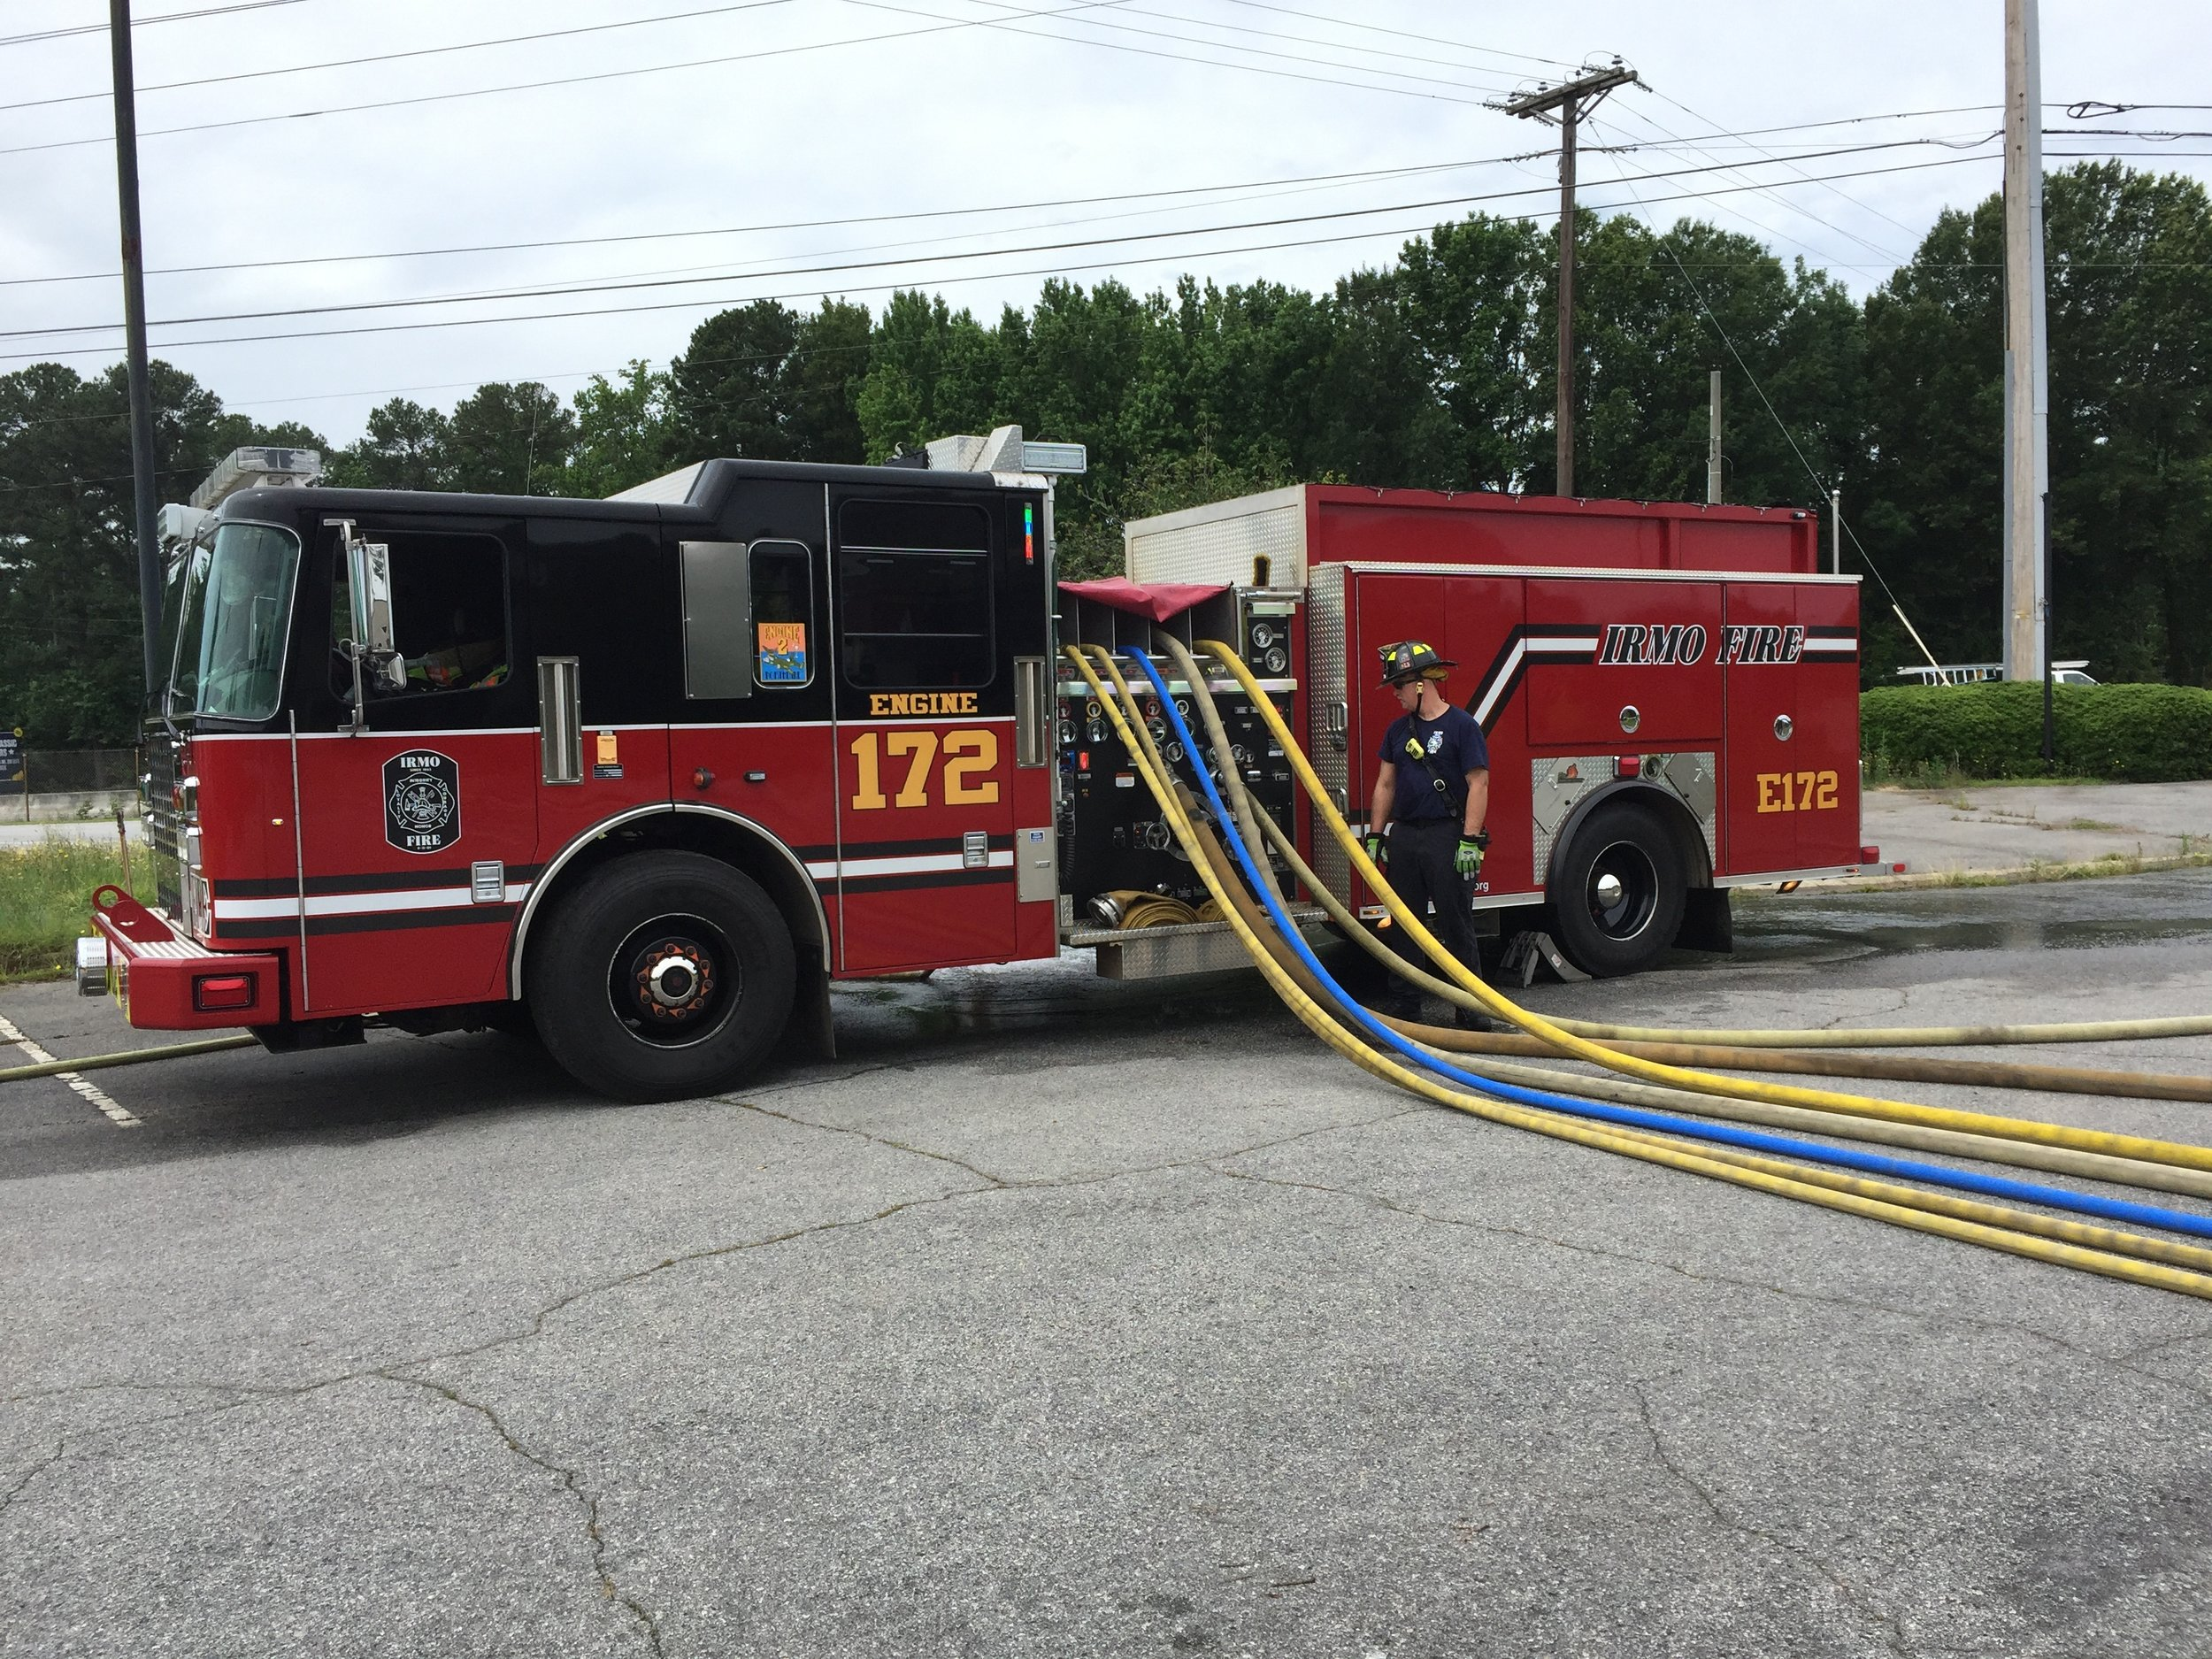 Engine 172 at a pumping training evolution.